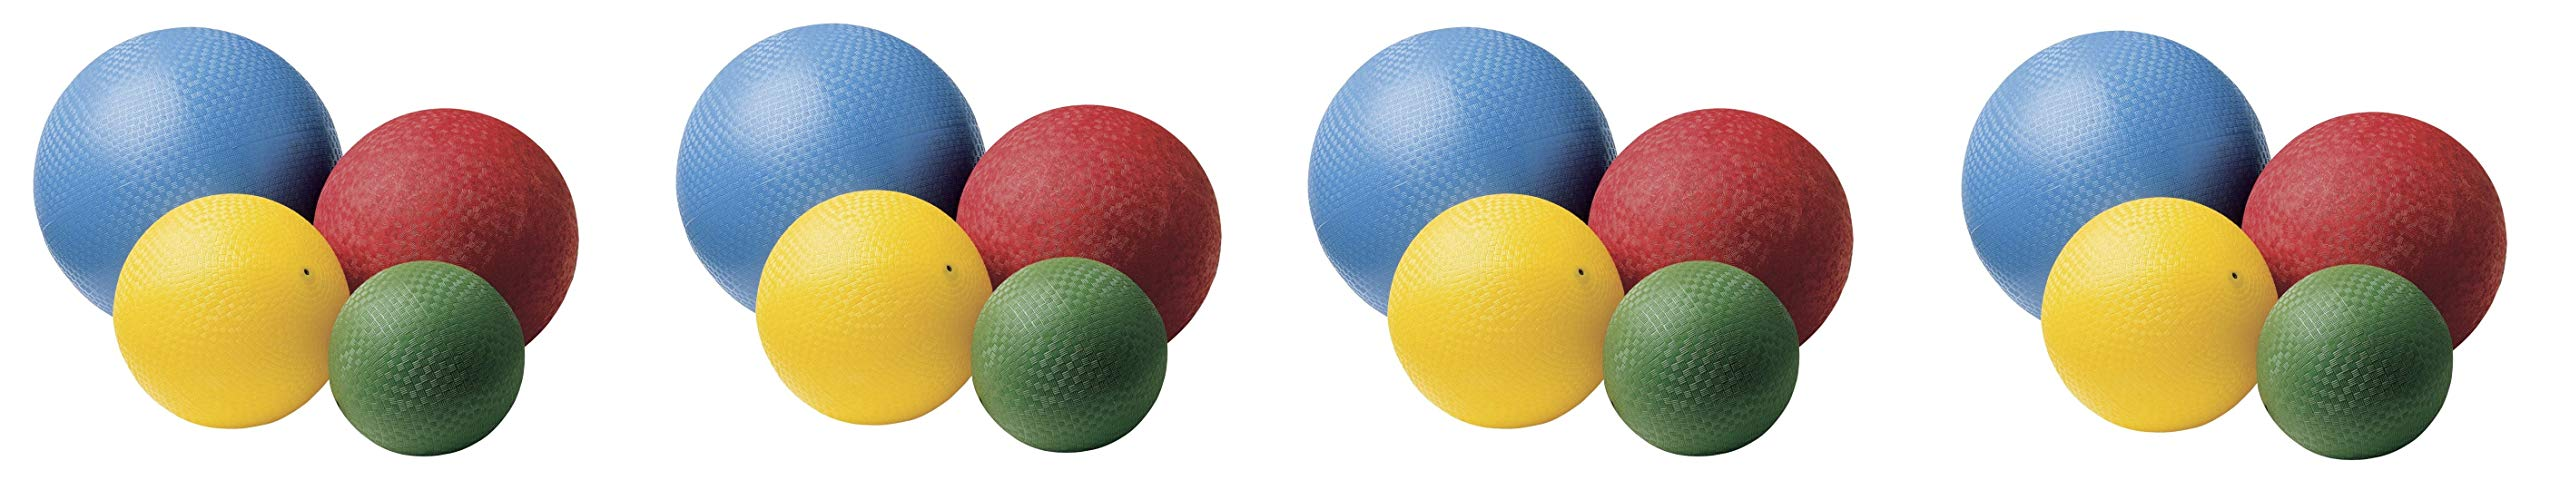 Sportime Rubber Playground Ball Set, Assorted Size, Assorted Color, Set of 16 (4-Pack) by Sportime